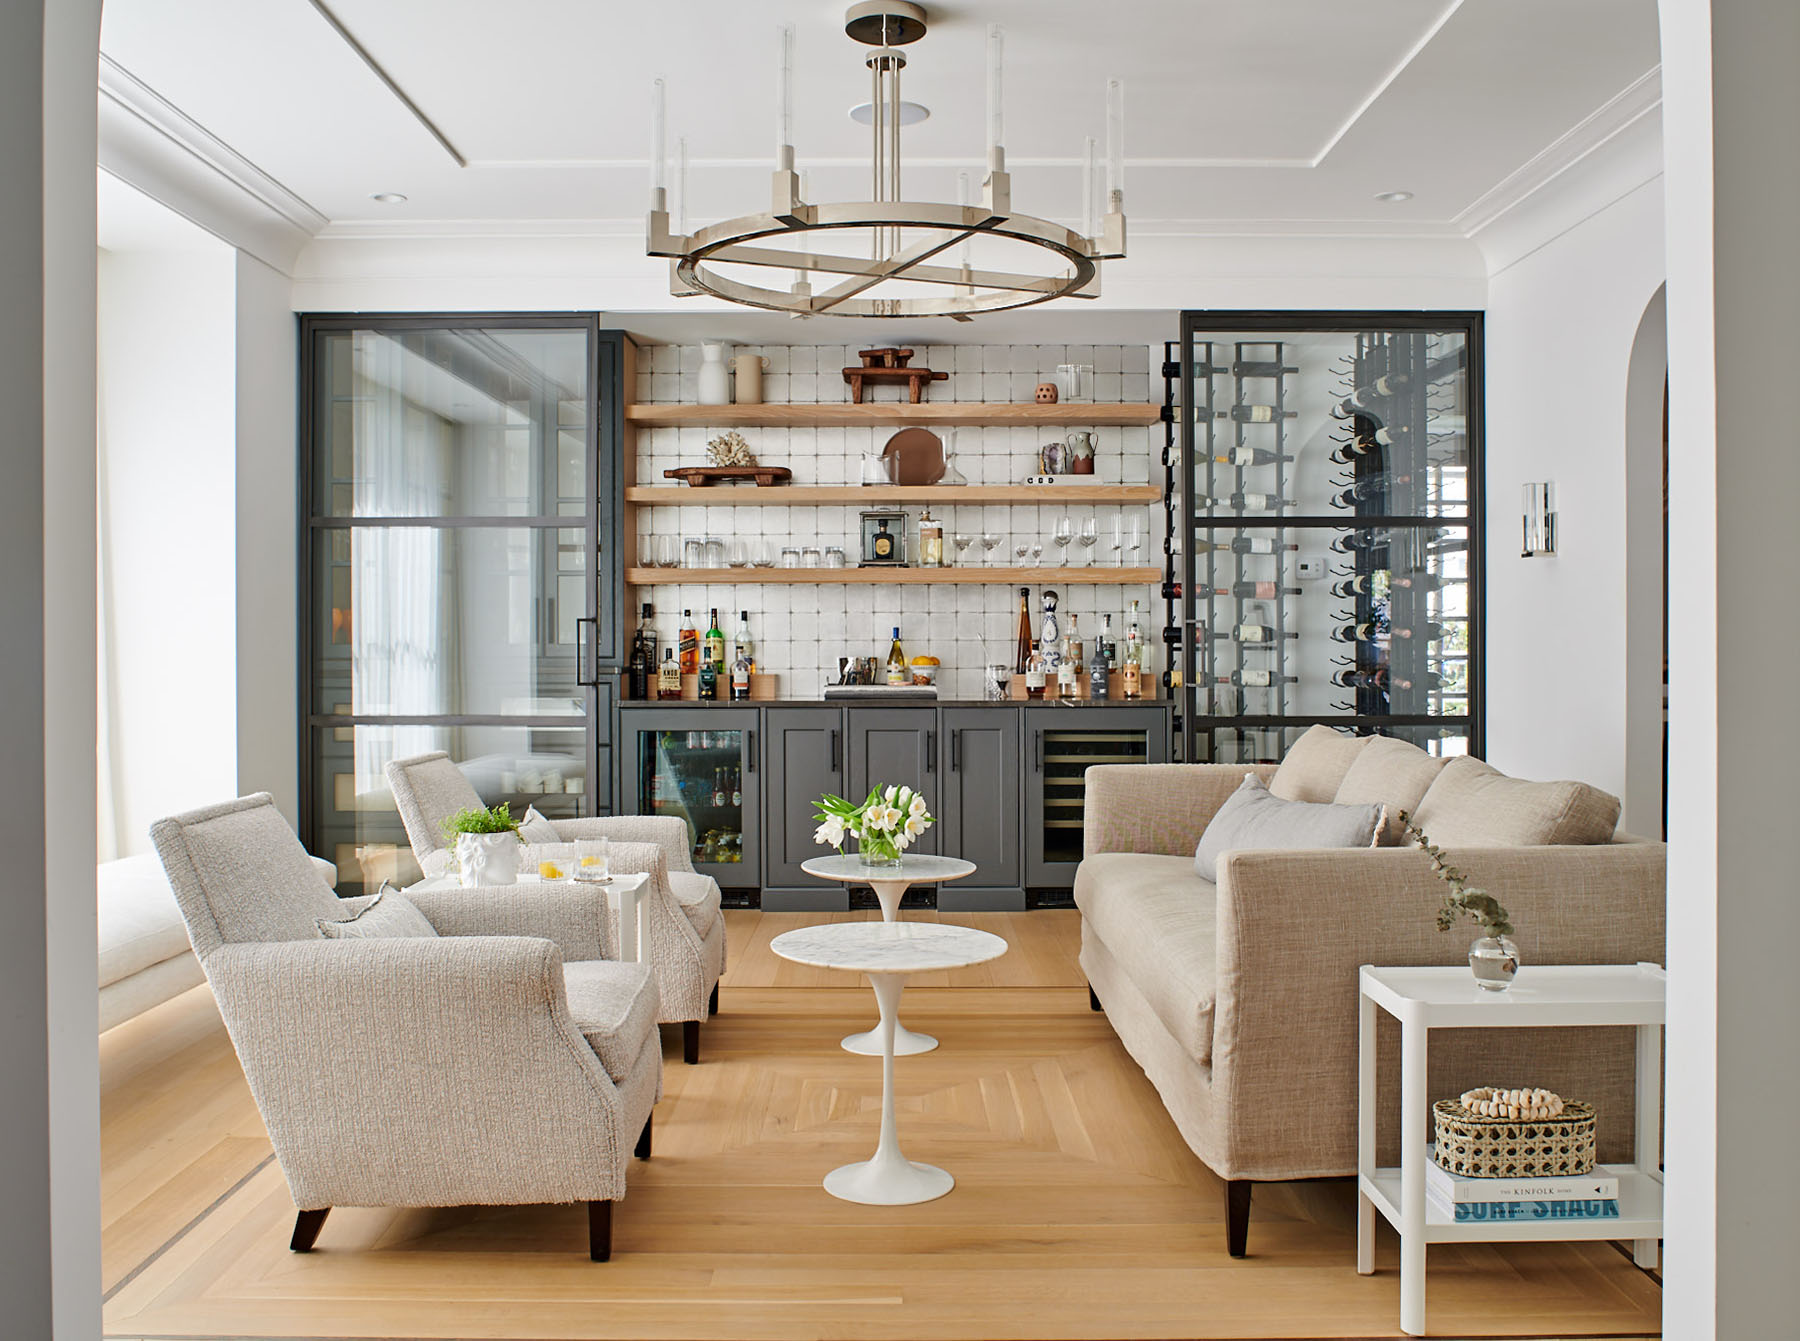 Original rendering of this lovely bar room by Ellie Mroz Design had full contrast and balanced exposure.